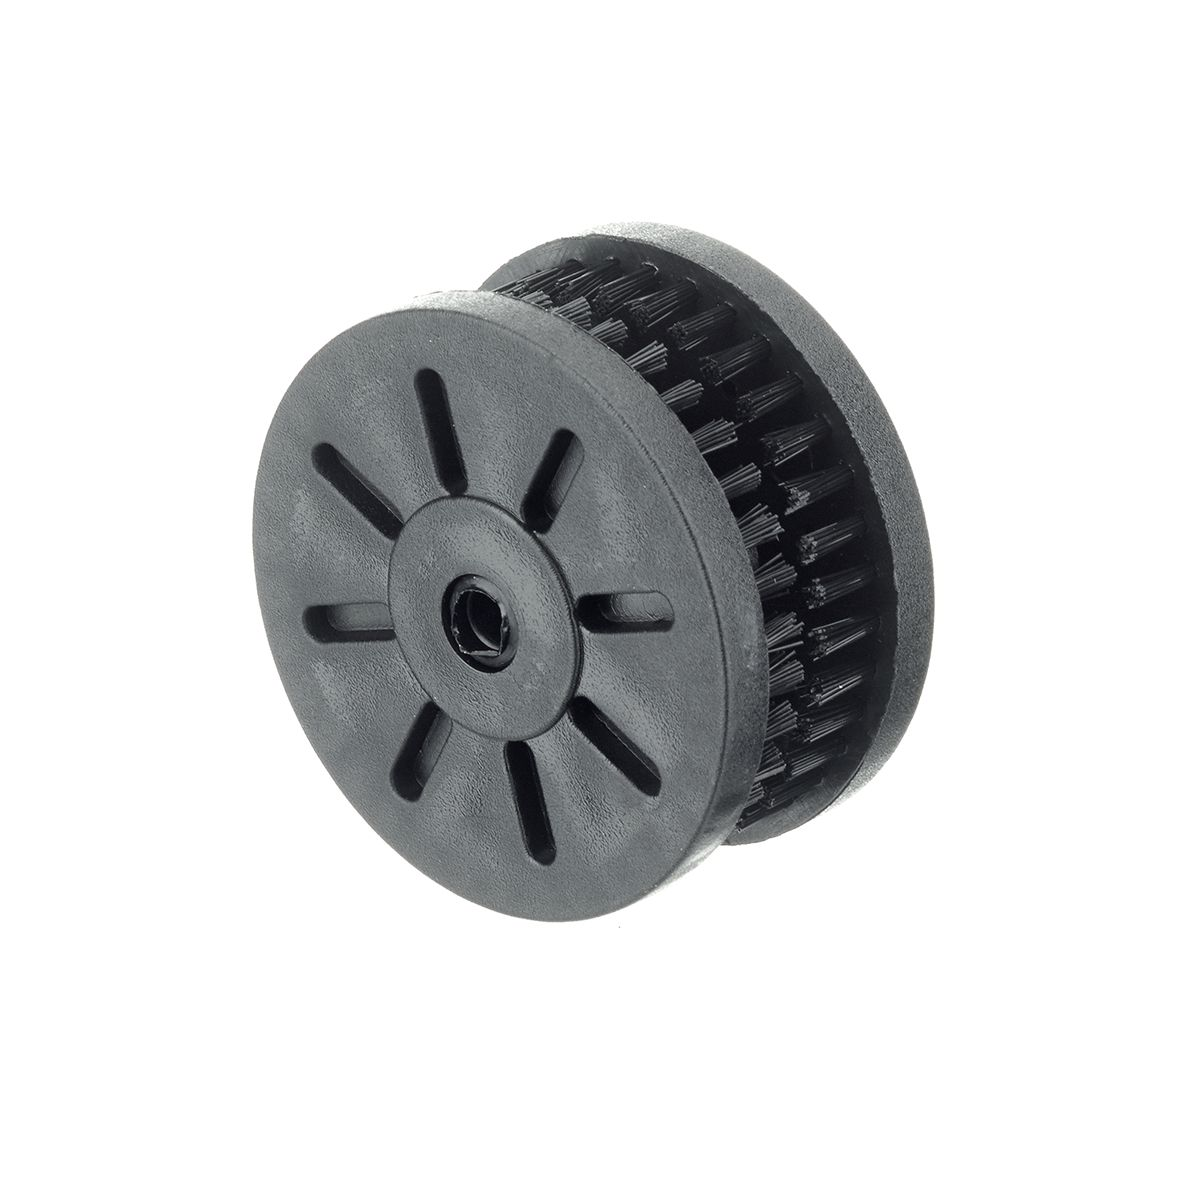 replacement chain guide brush for Caretec